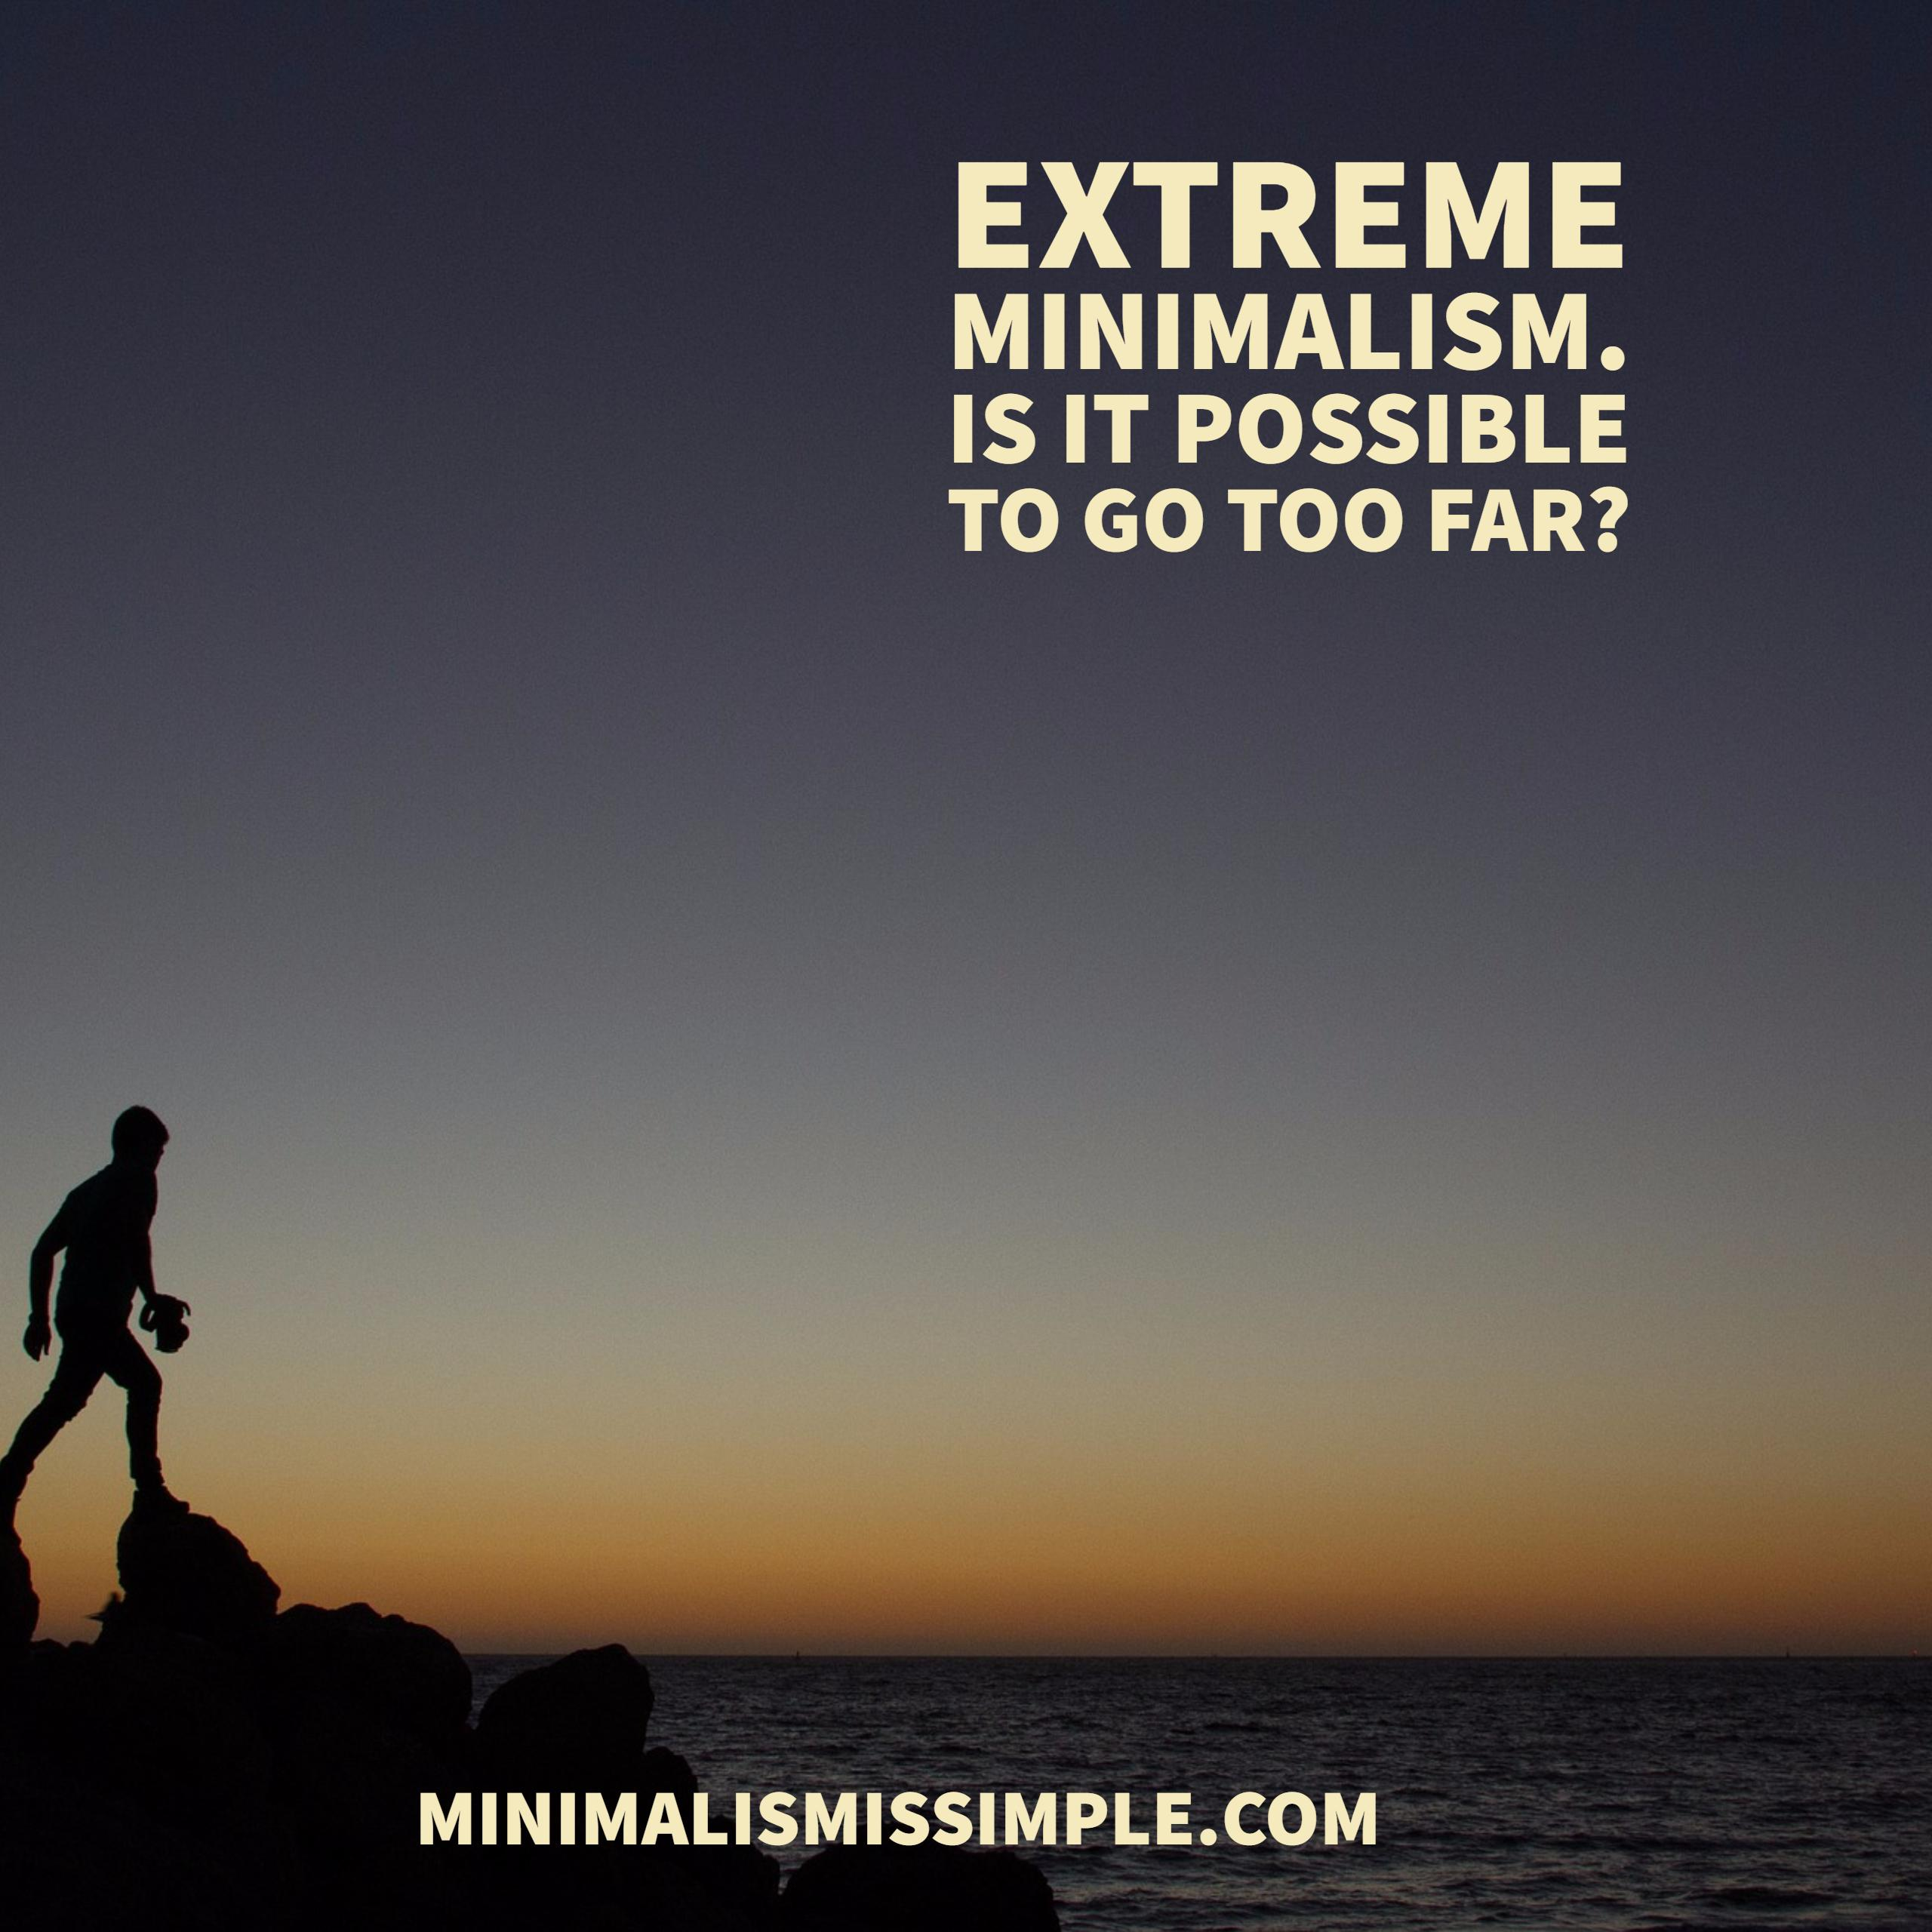 extreme minimalism can you go too far minimalismissimple.com